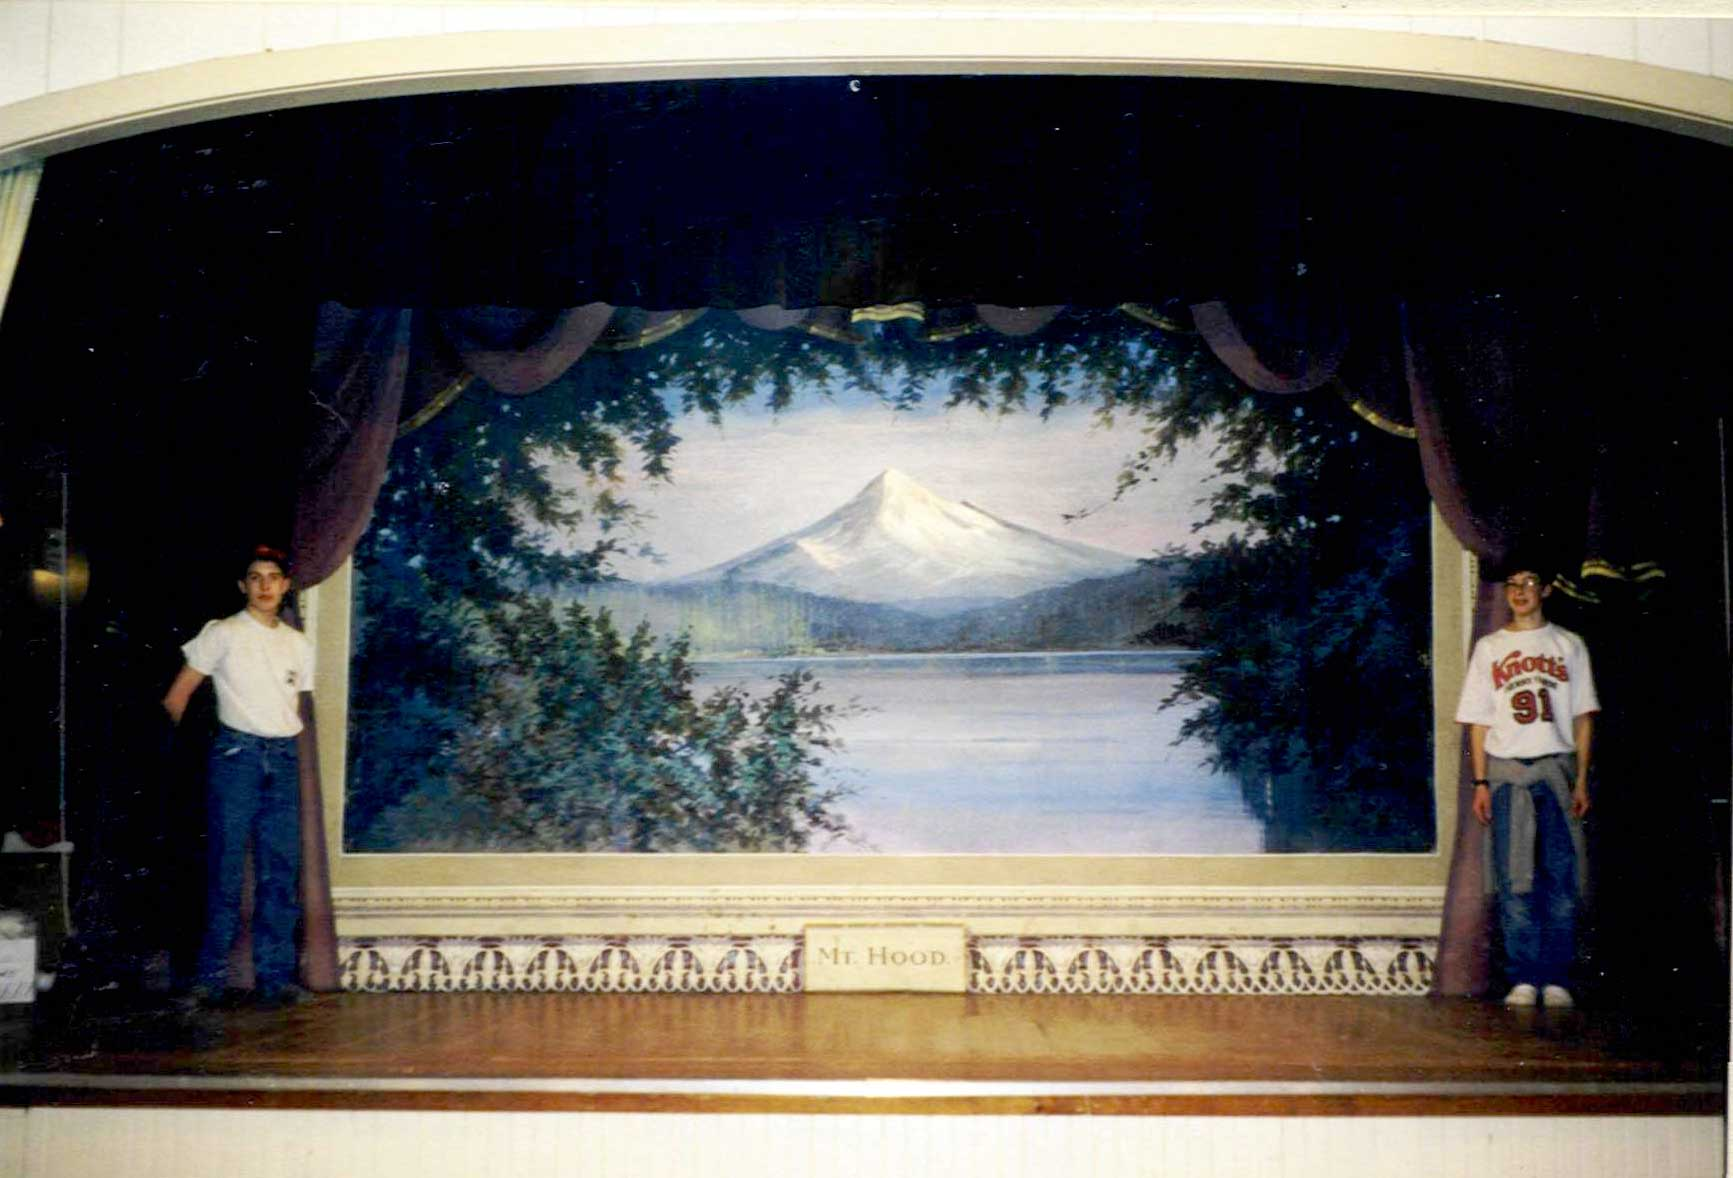 Stage - flat of Mt. Hood